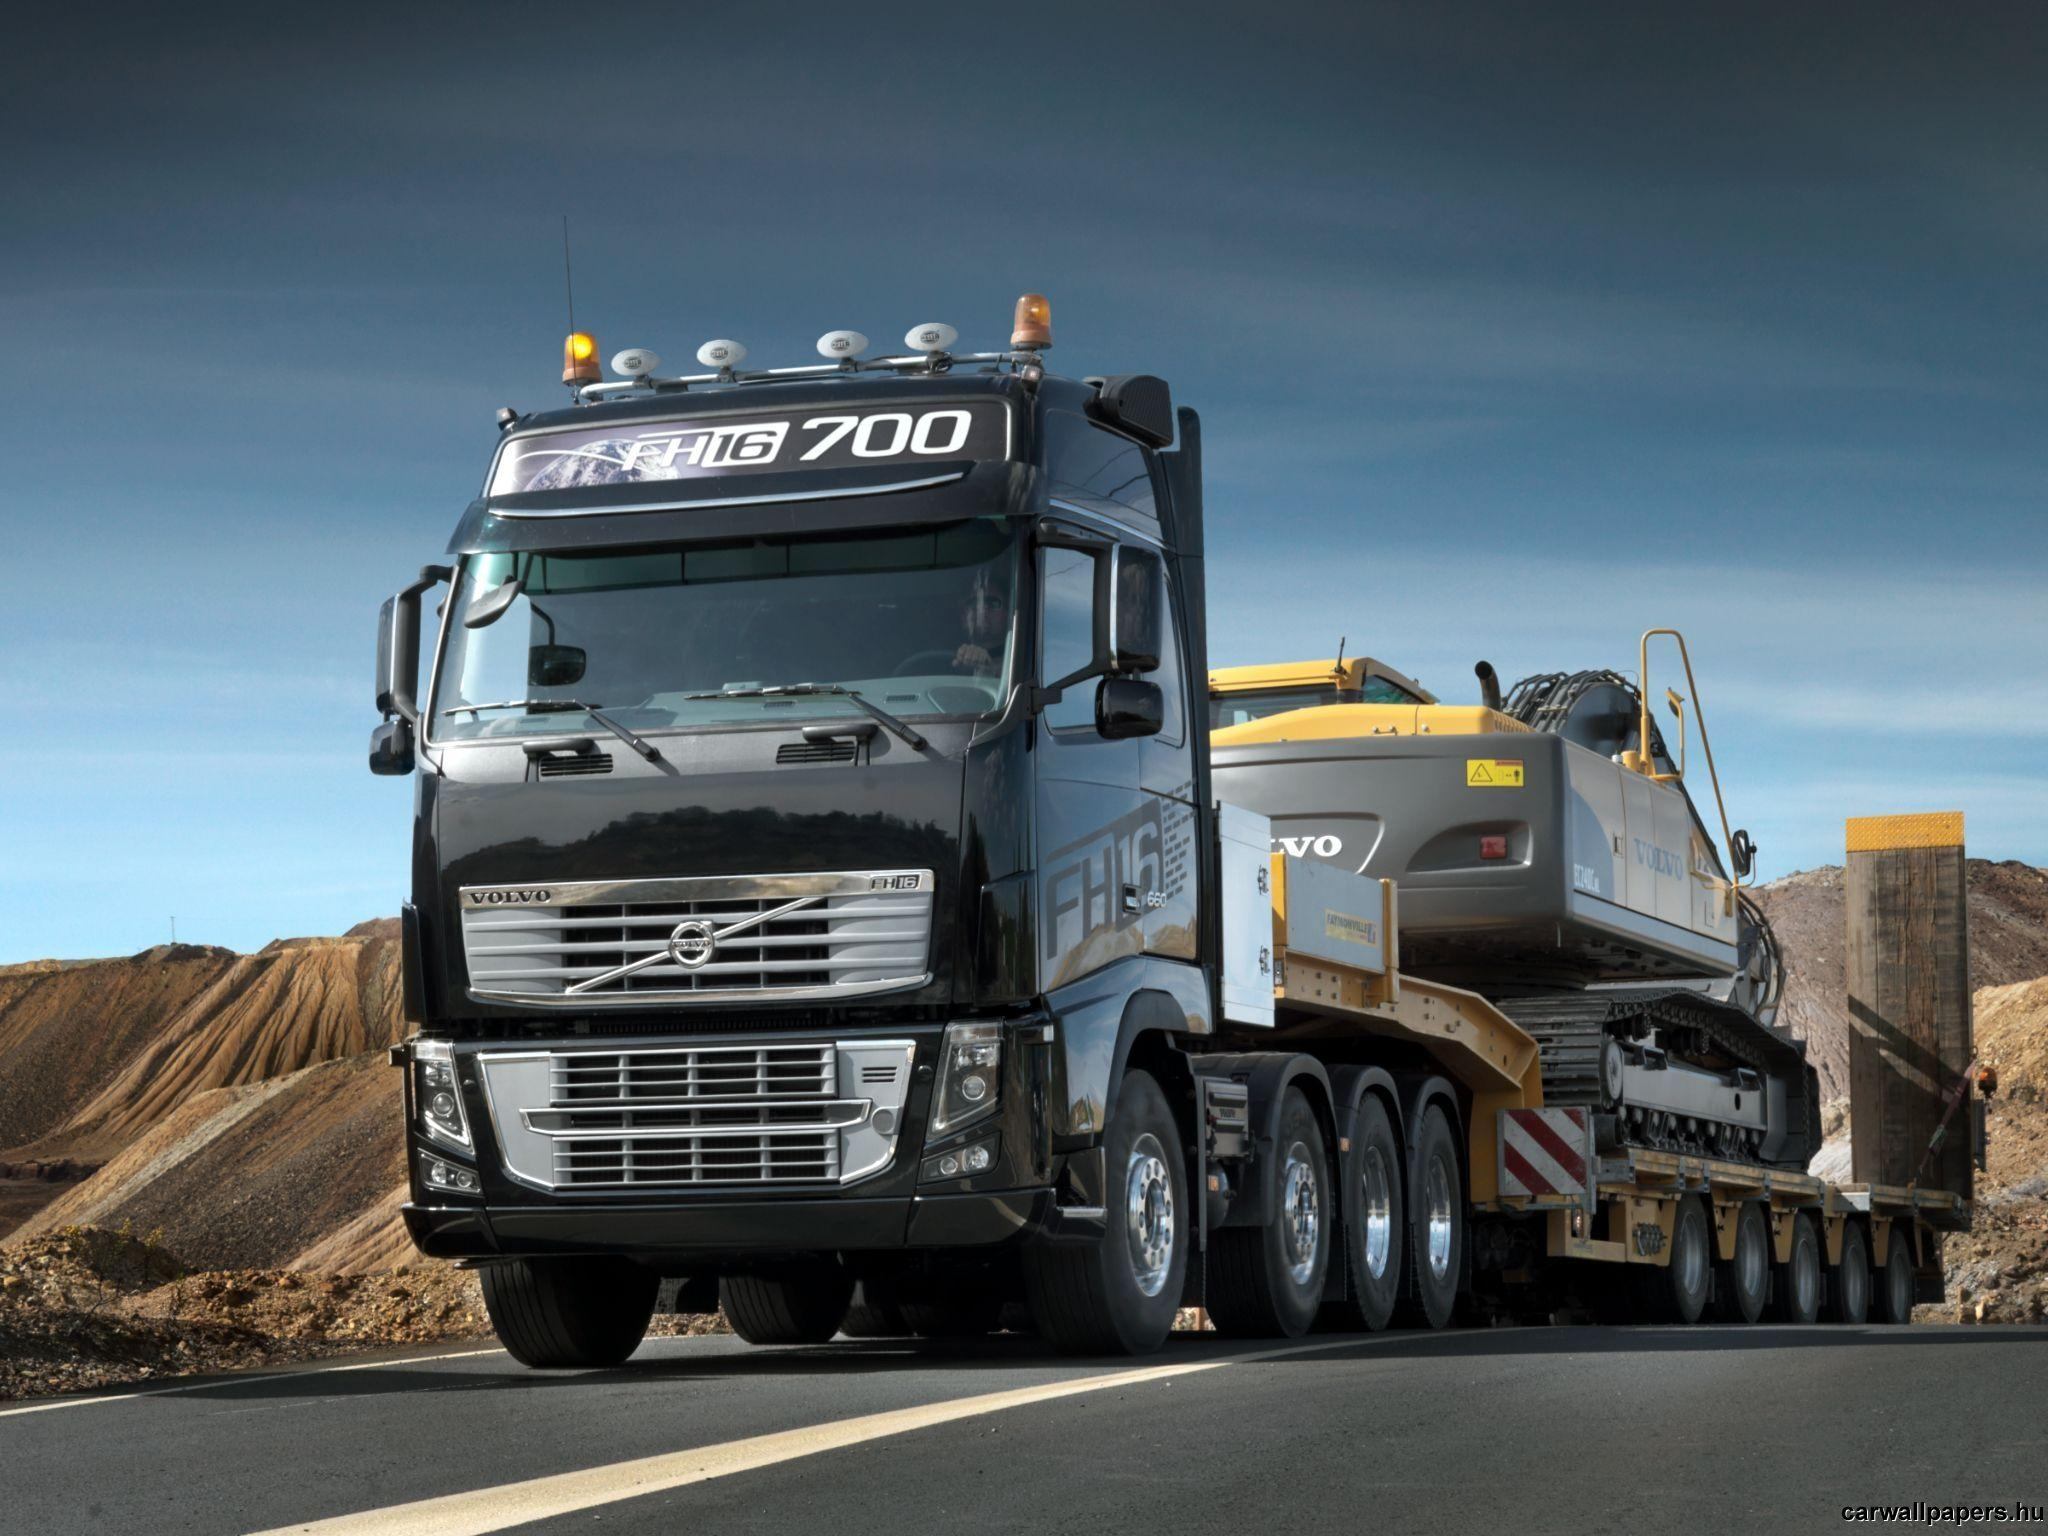 Ship Your Car Now on Heavy Haul Transport